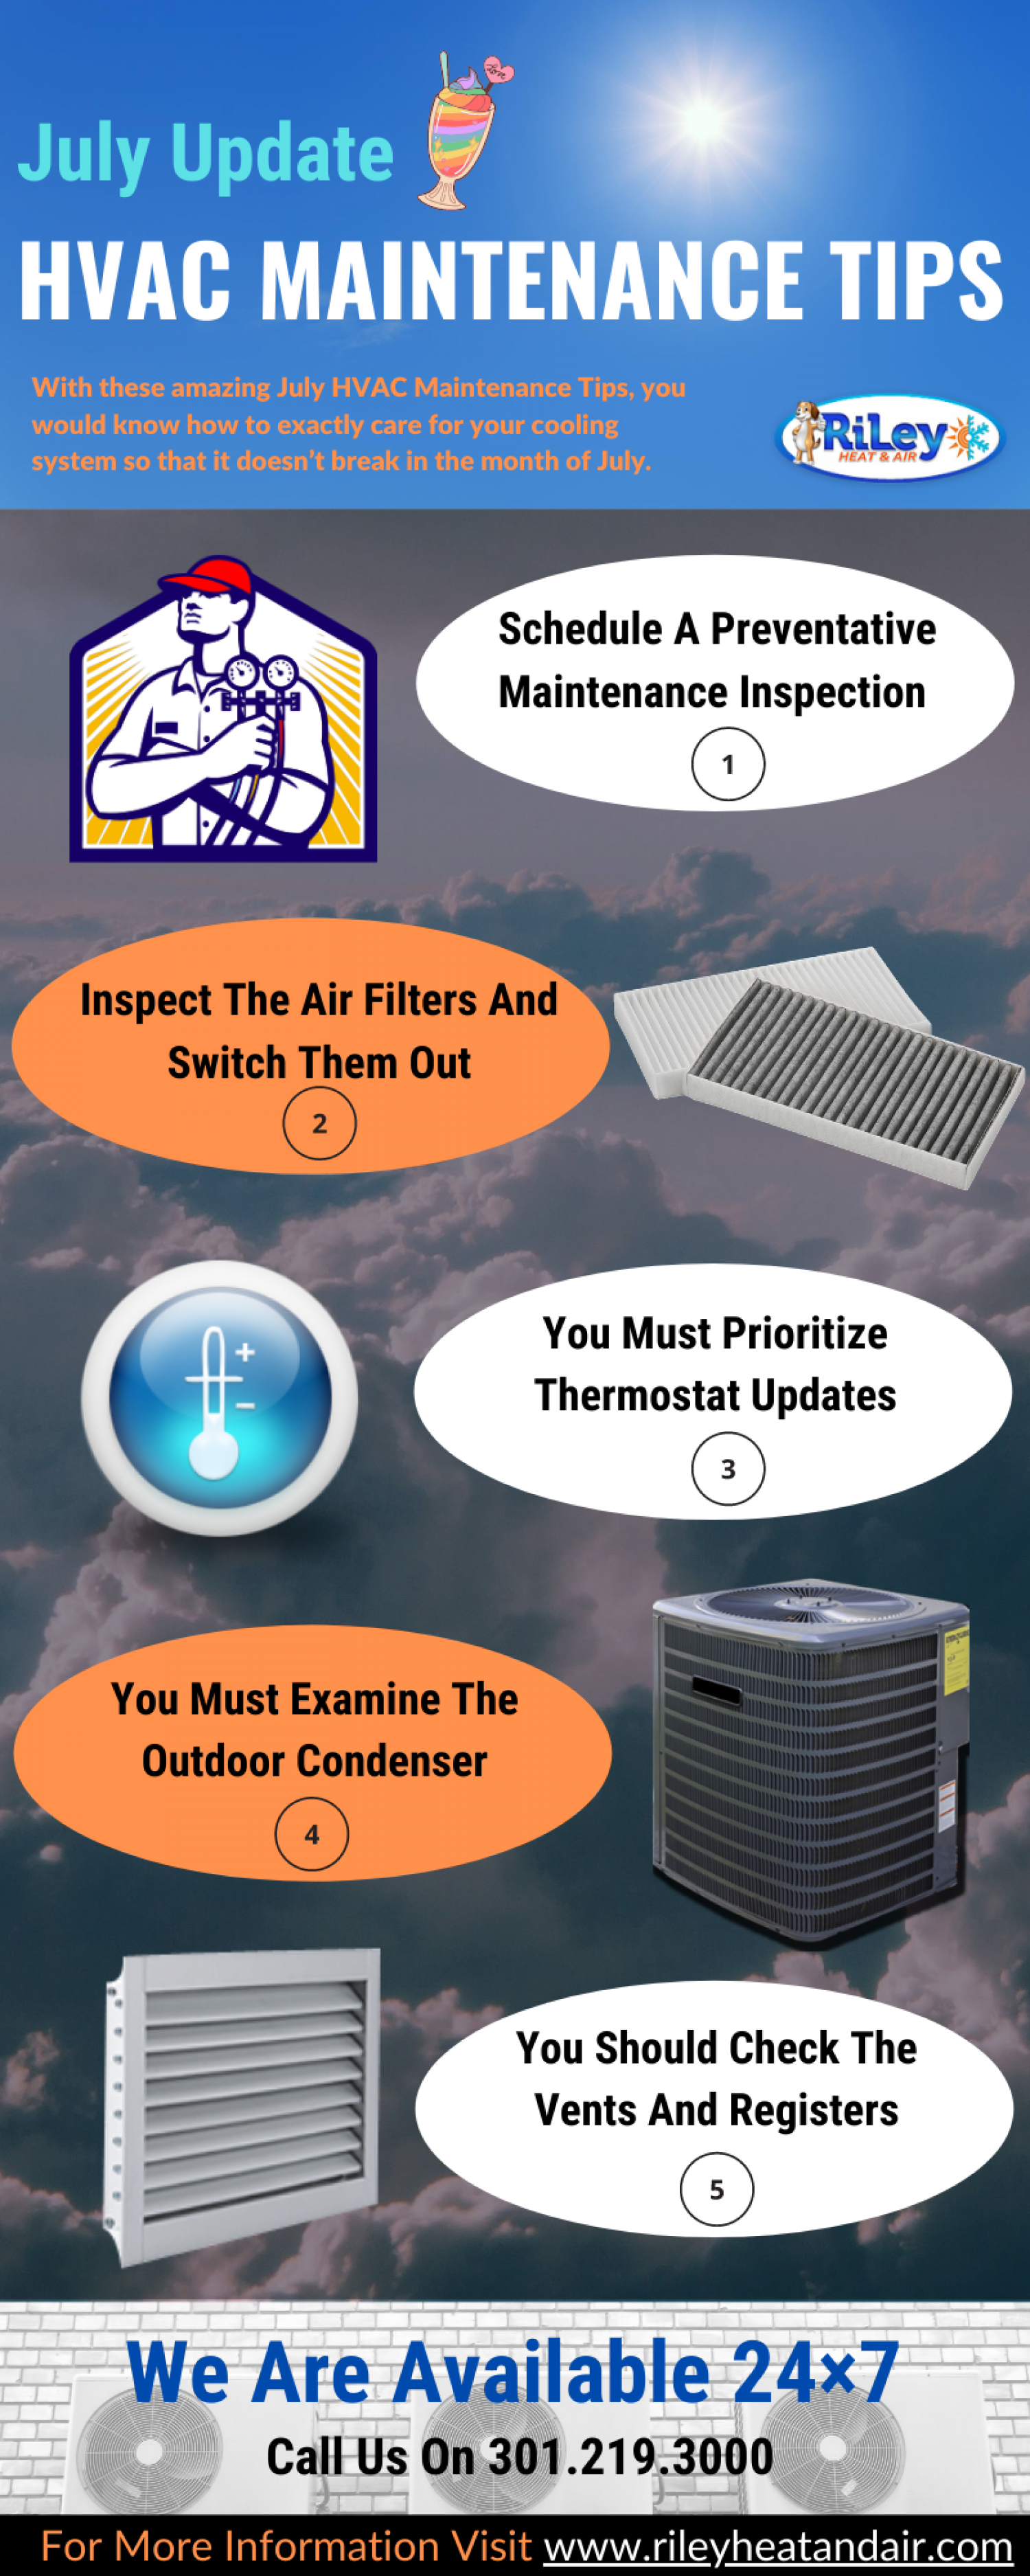 July update: HVAC maintenance tips Infographic